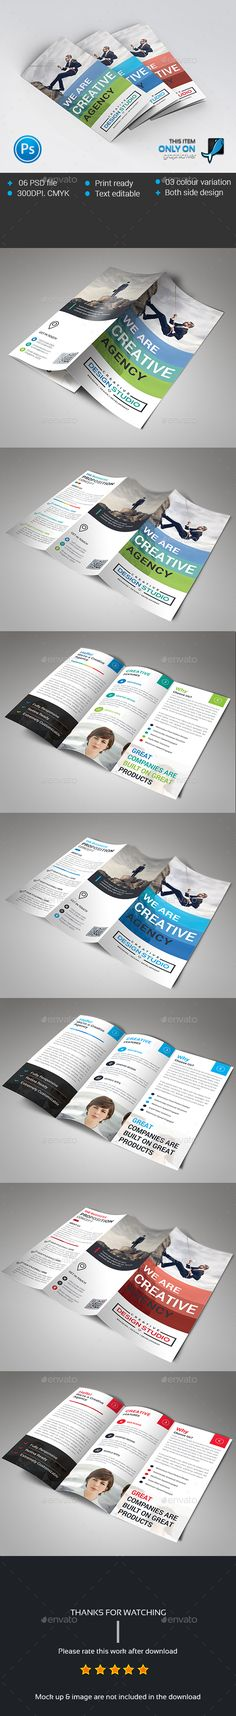 Trifold Brochure Template PSD. Download here: http://graphicriver.net/item/trifold/14596987?ref=ksioks